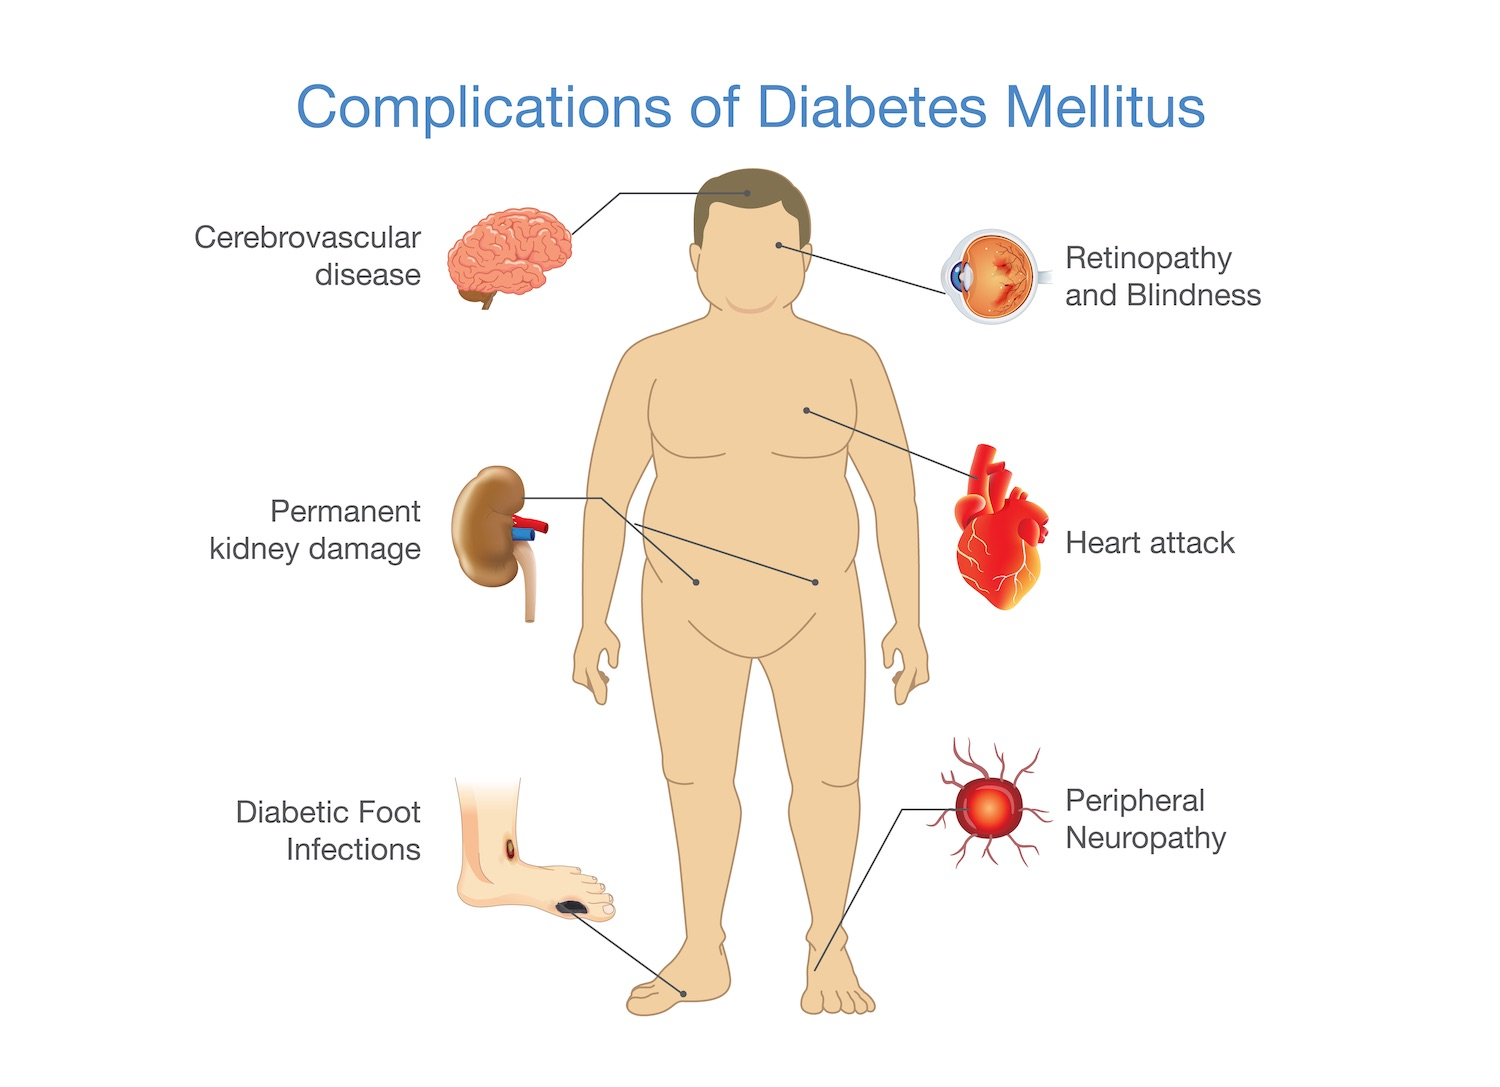 Complications of type 1 diabetes includes problems with the small and large blood vessels